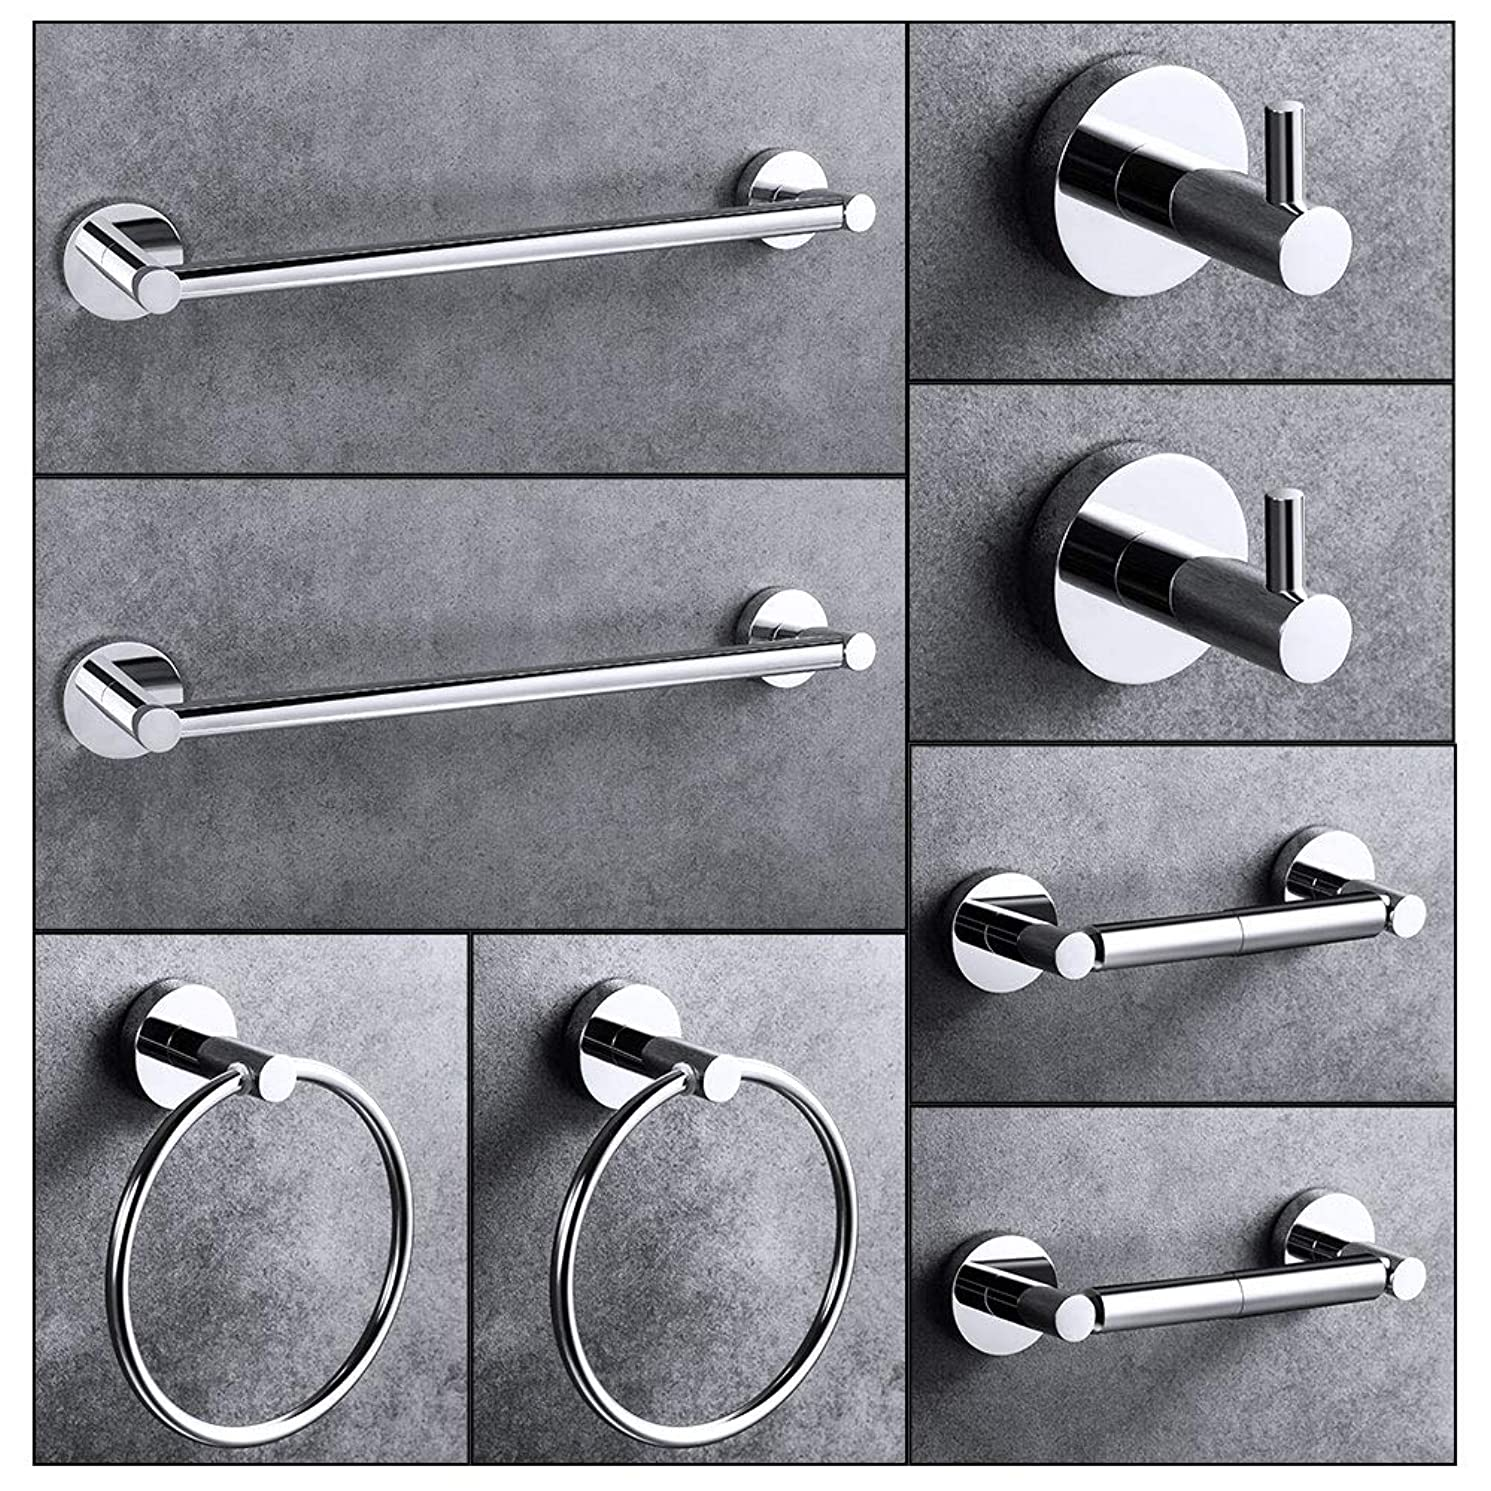 """LUCKUP 8 Piece Bathroom Accessory Set, Towel Bar Set, Include 2 x 24""""Towel Bar, 2 x Robe Hook, 2 x 6.6""""Towel Ring 2 x7""""Toilet Paper Holder, 304 Stainless Steel Wall Mounted,Polished Chrome …"""